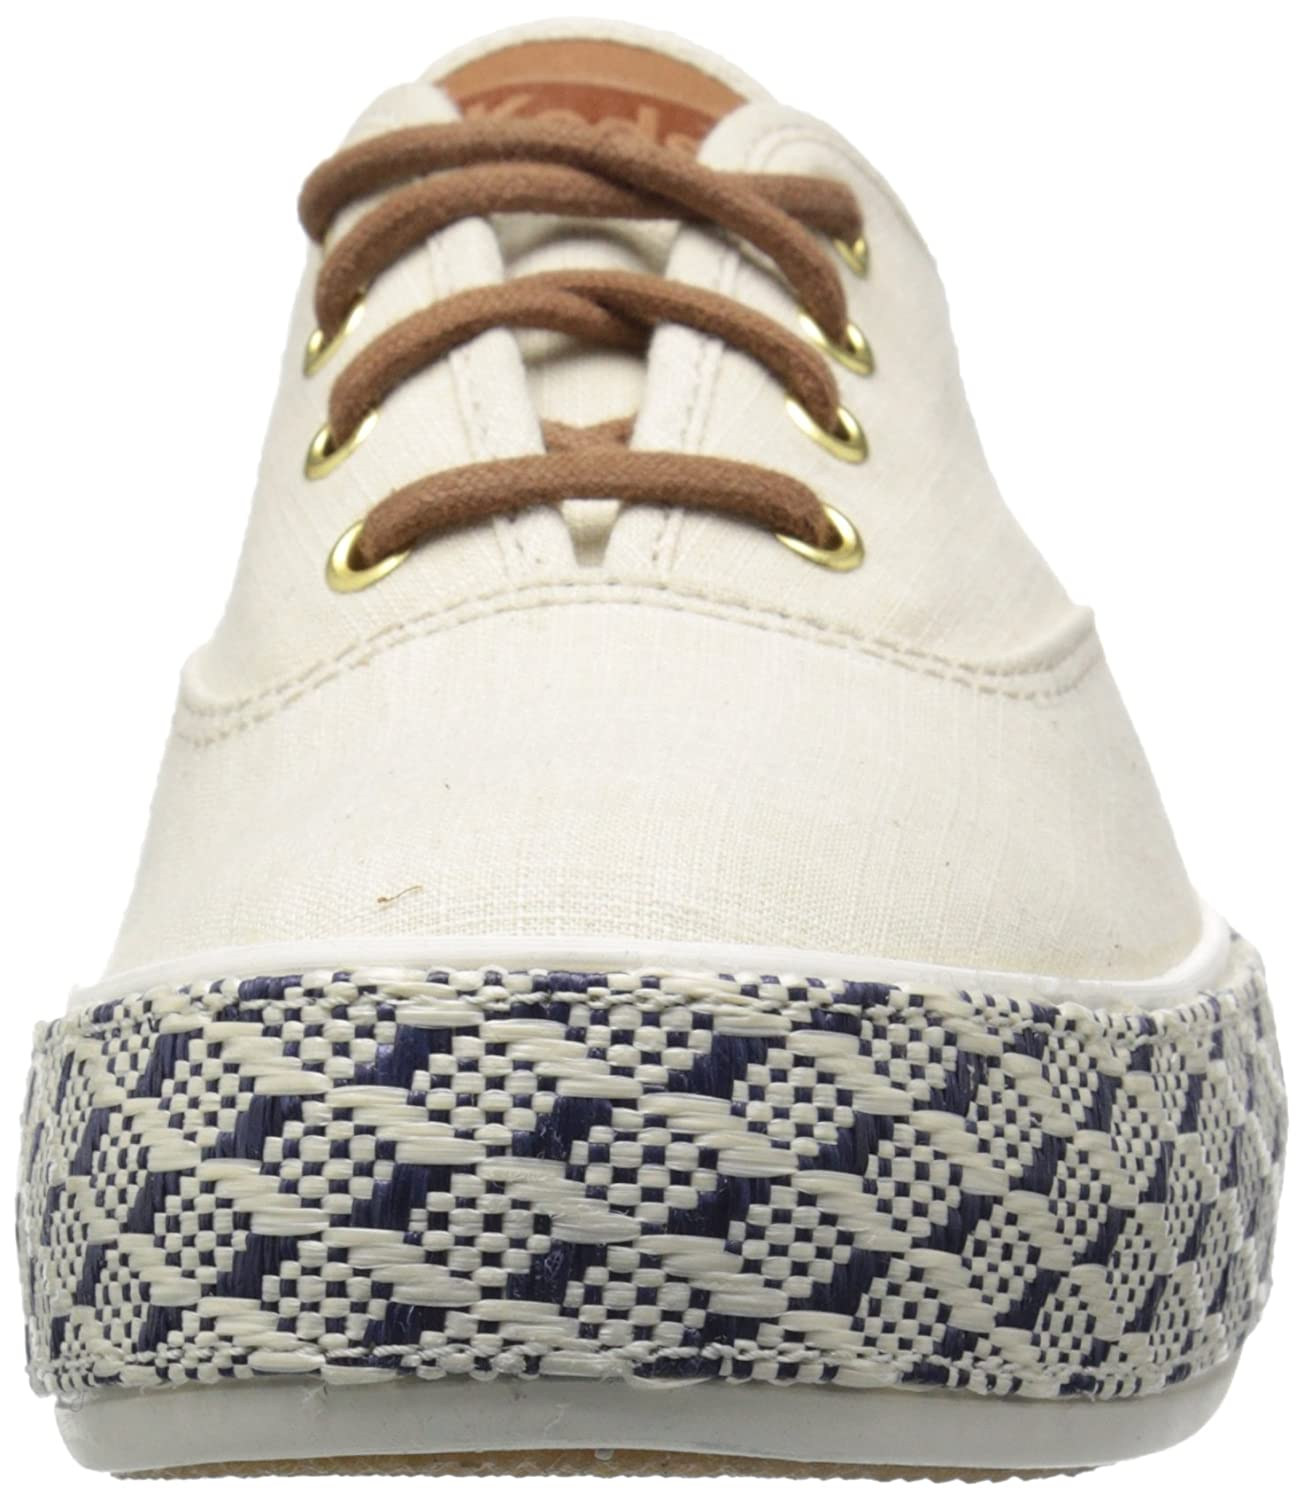 Keds Womens Triple Raffia Foxing Fashion Sneaker Golf Wiring Schematicit Shortsi Put The Positive Battery Cable On Sneakers